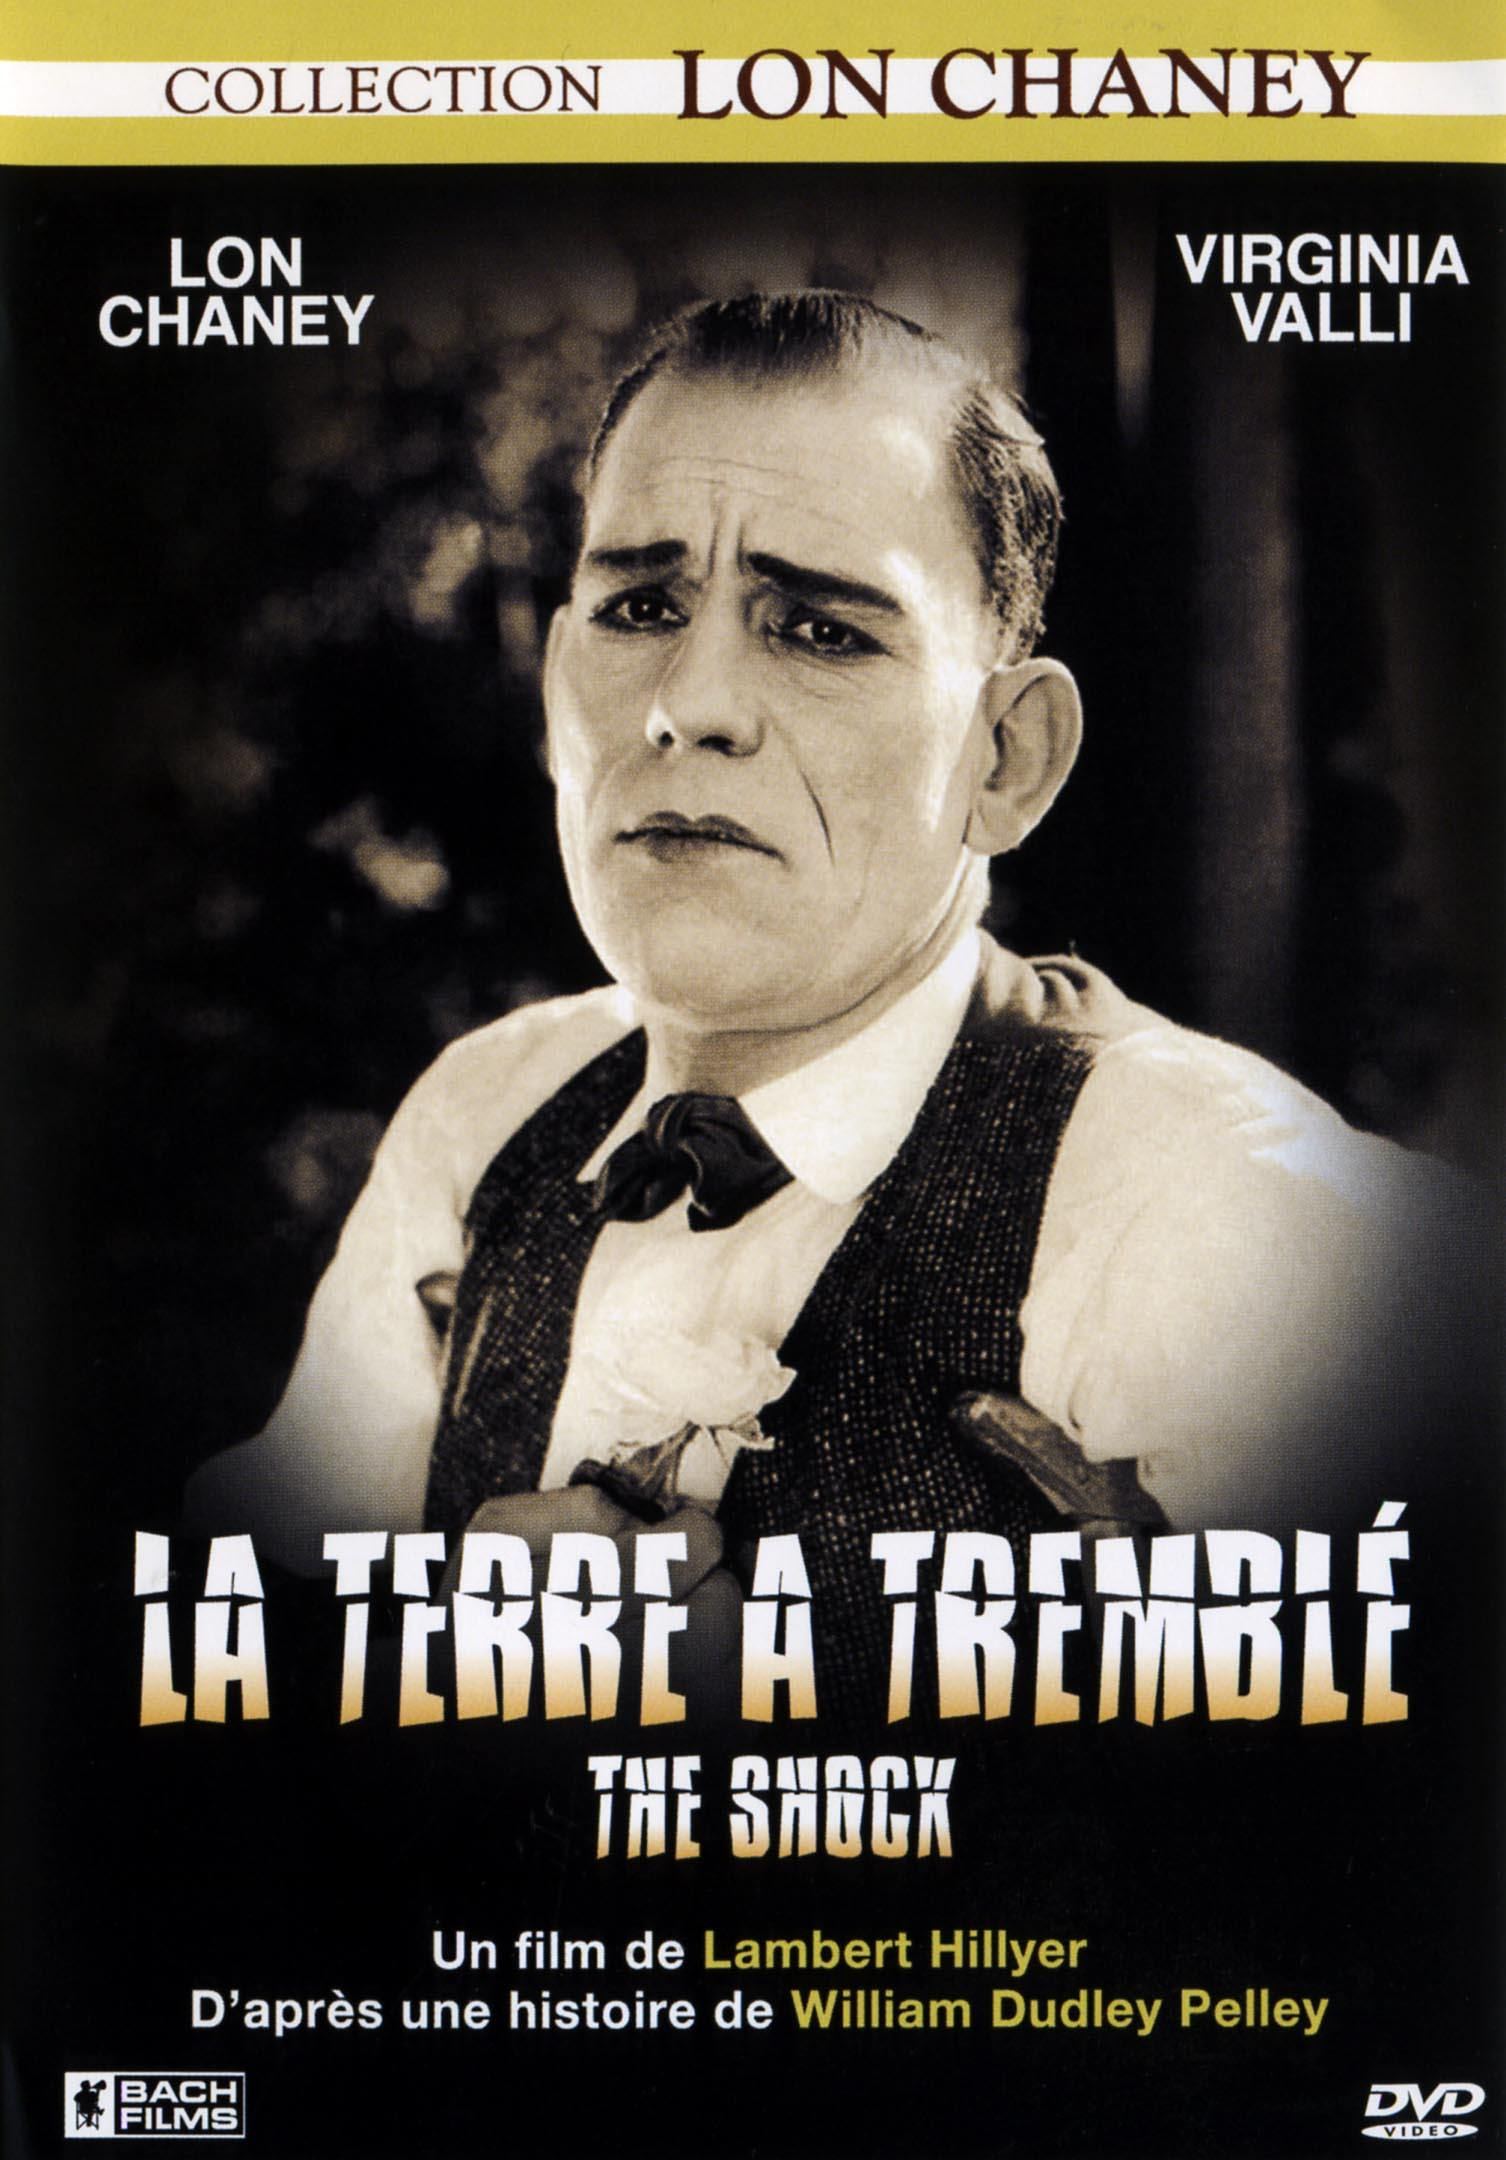 La terre a tremble - dvd  collection lon chaney